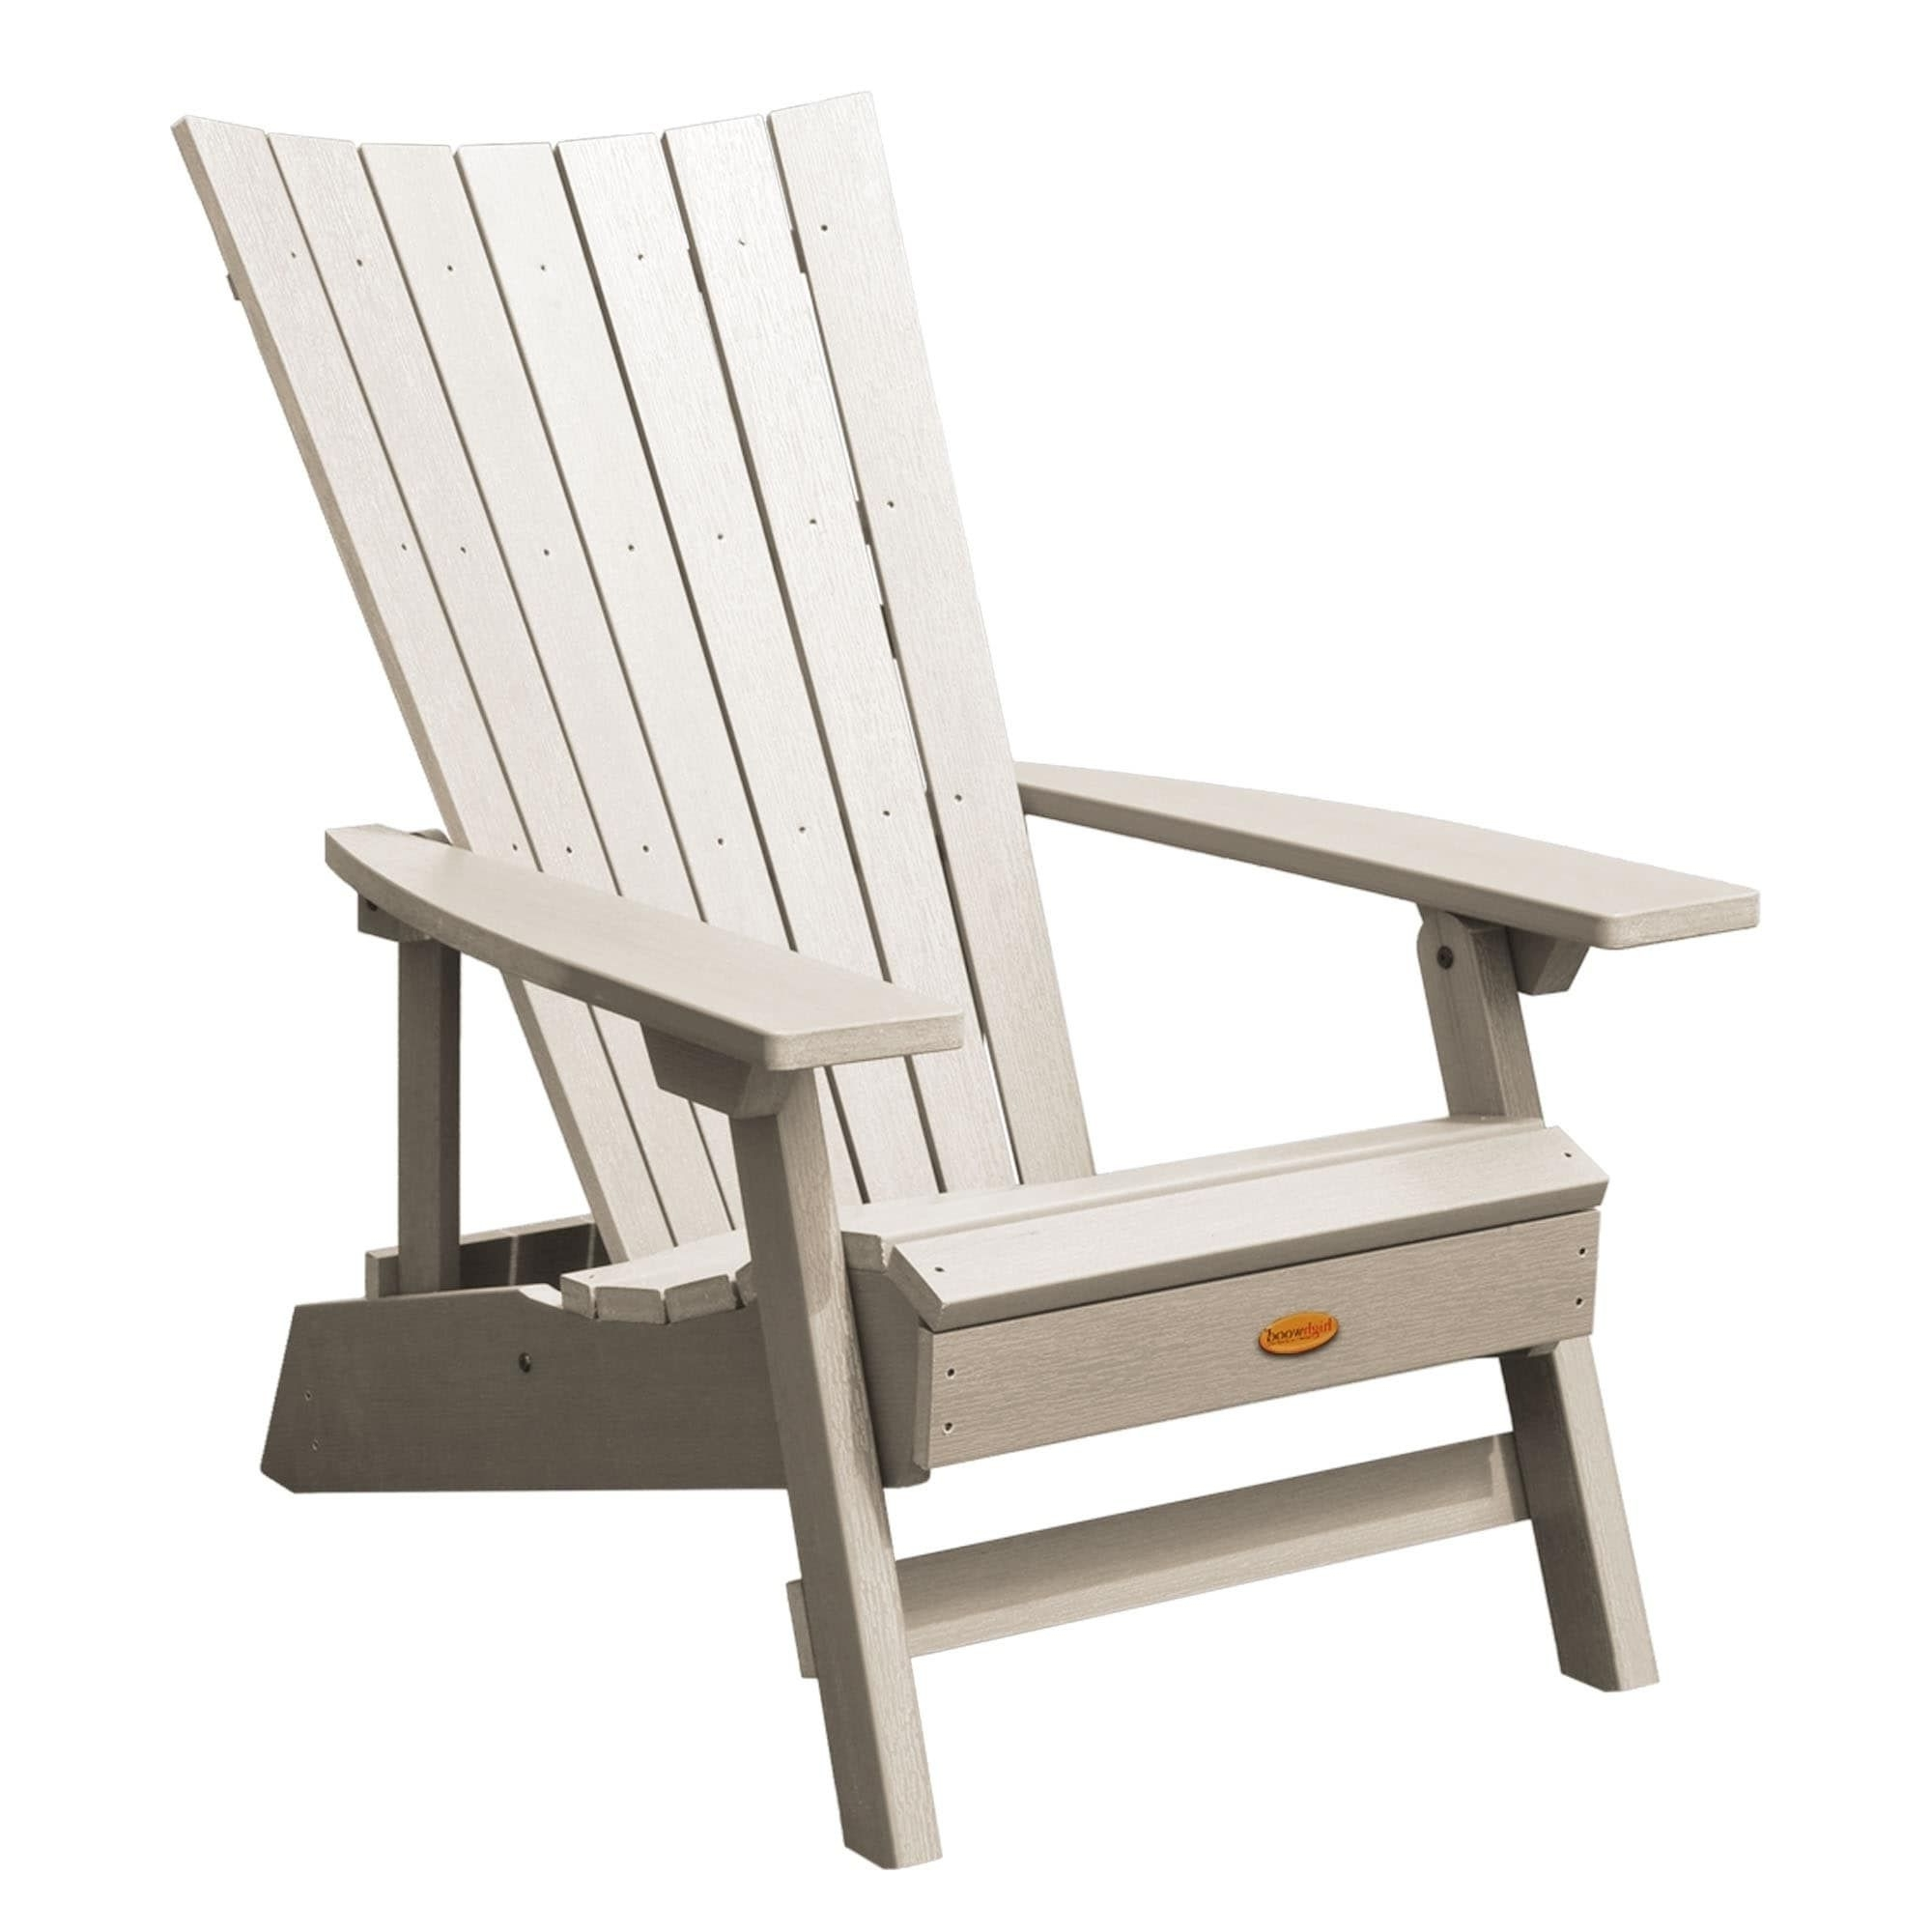 Preferred Manhattan Patio Grey Rocking Chairs Intended For Highwood Manhattan Beach Adirondack Chair (black), Size Single (View 4 of 20)